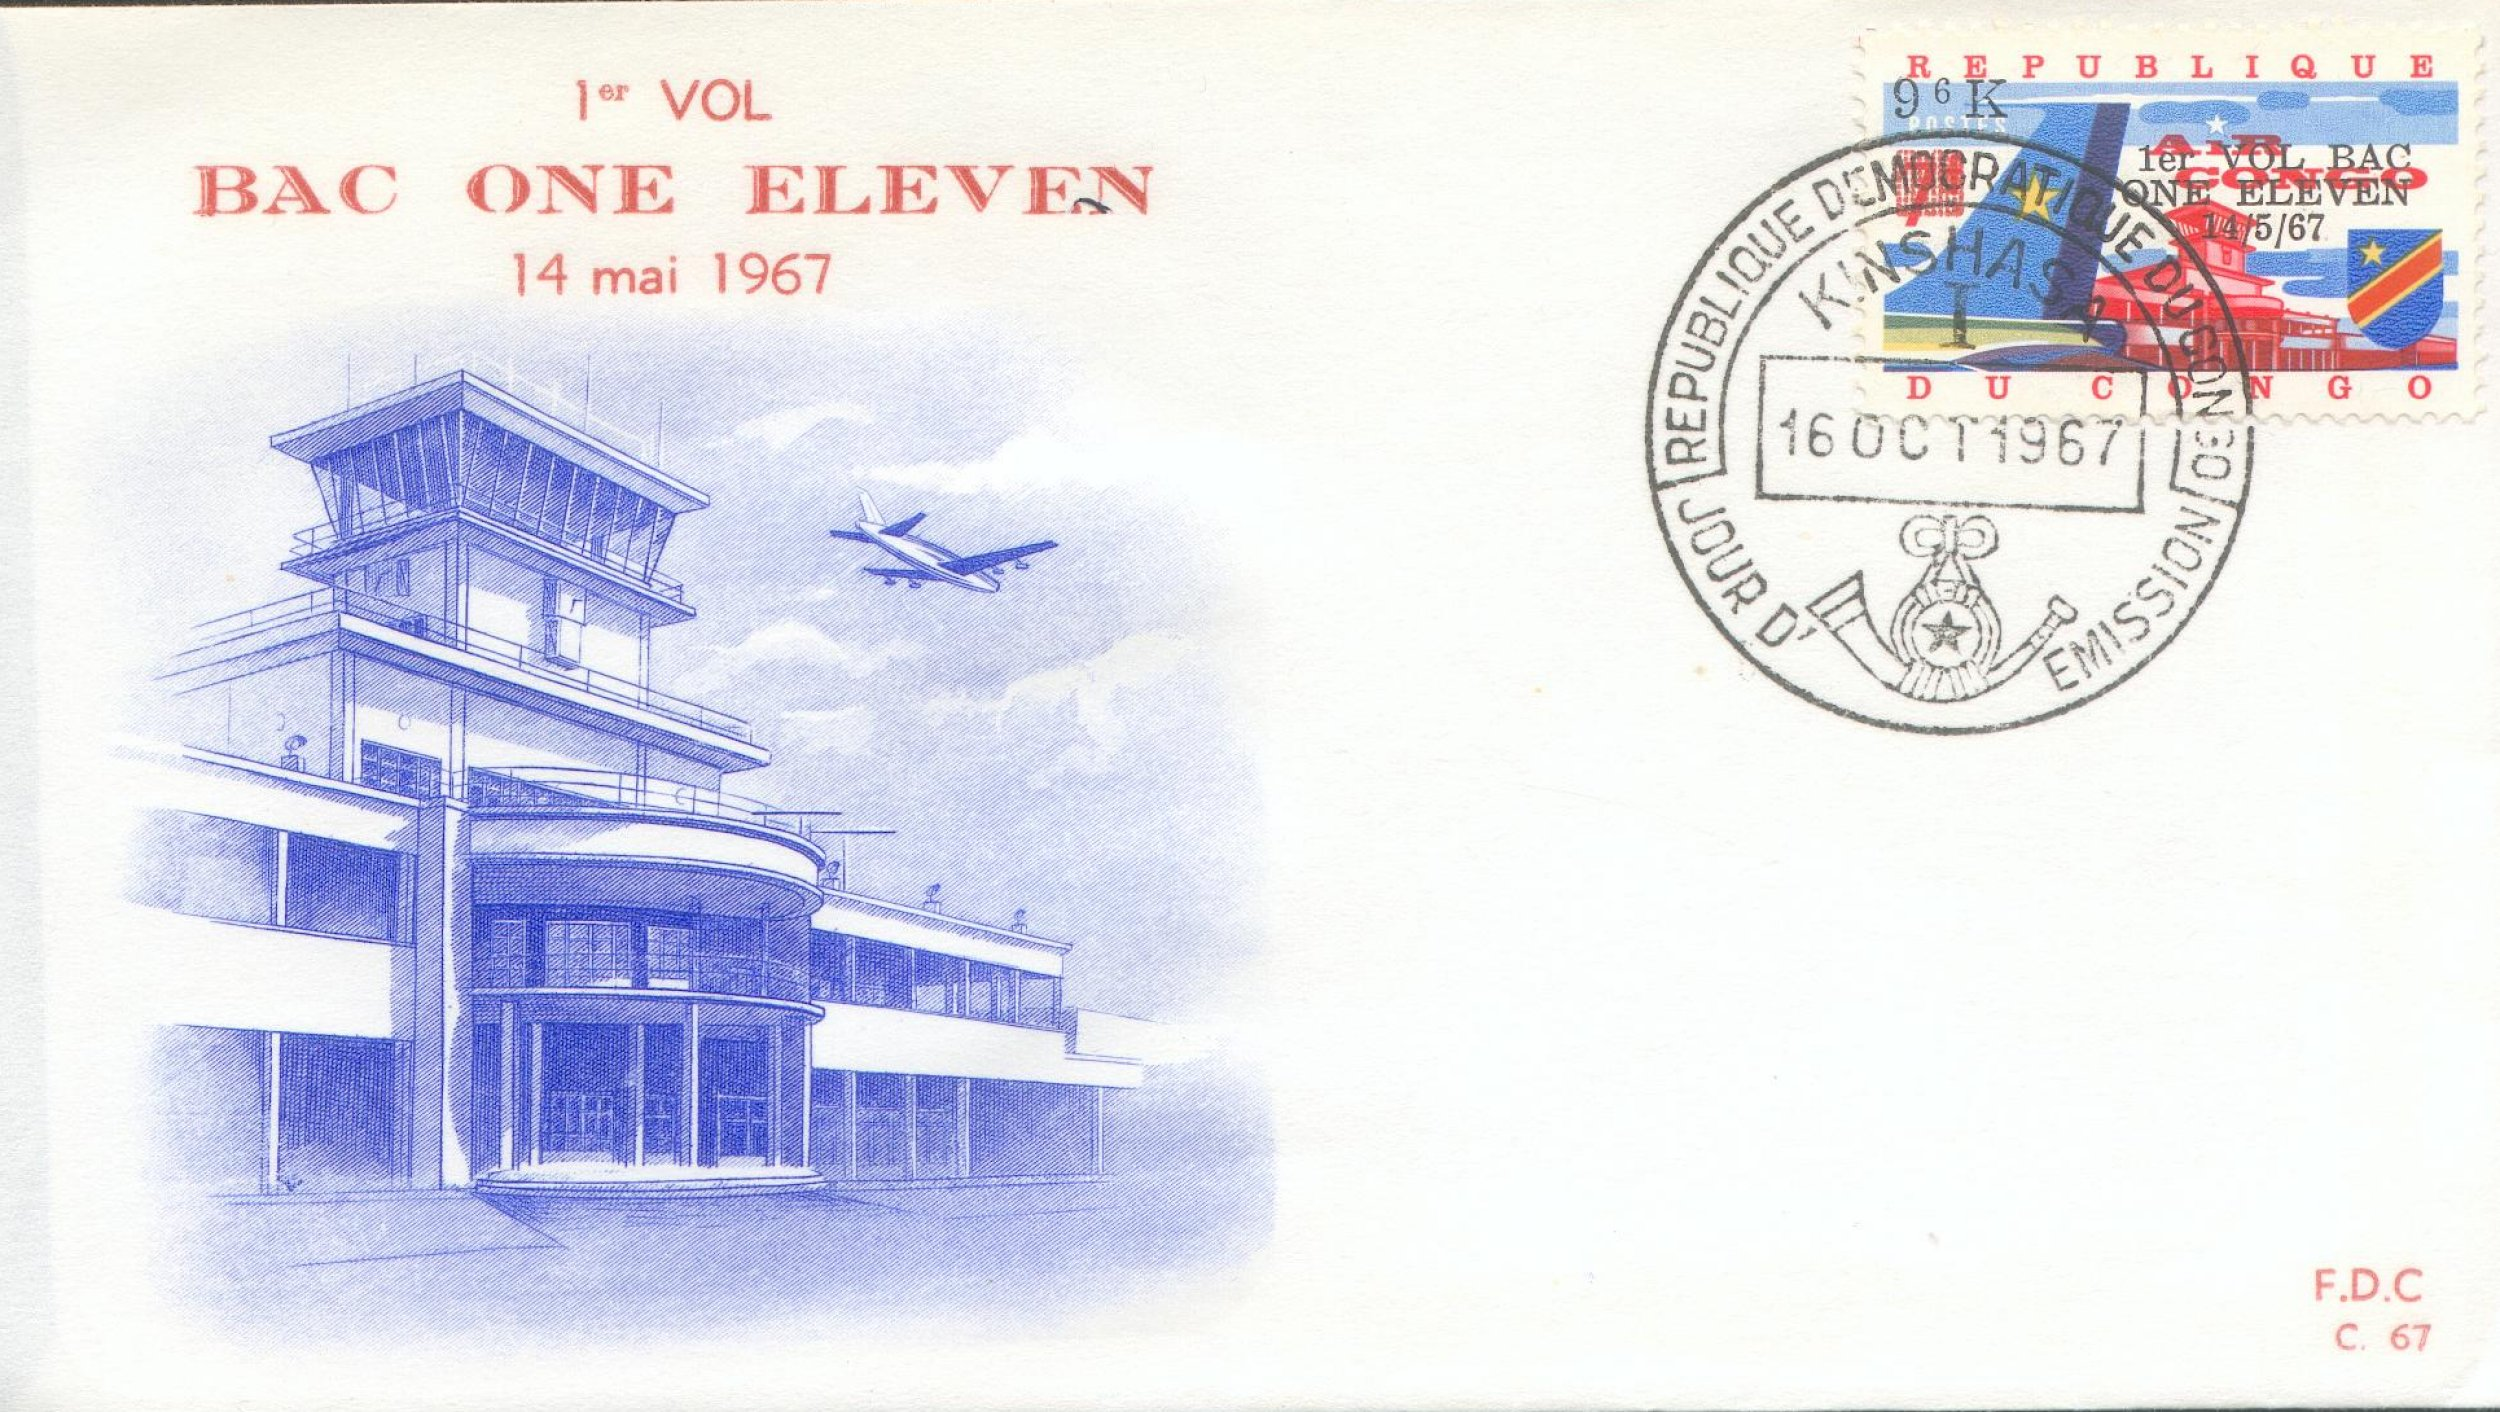 FDC C67